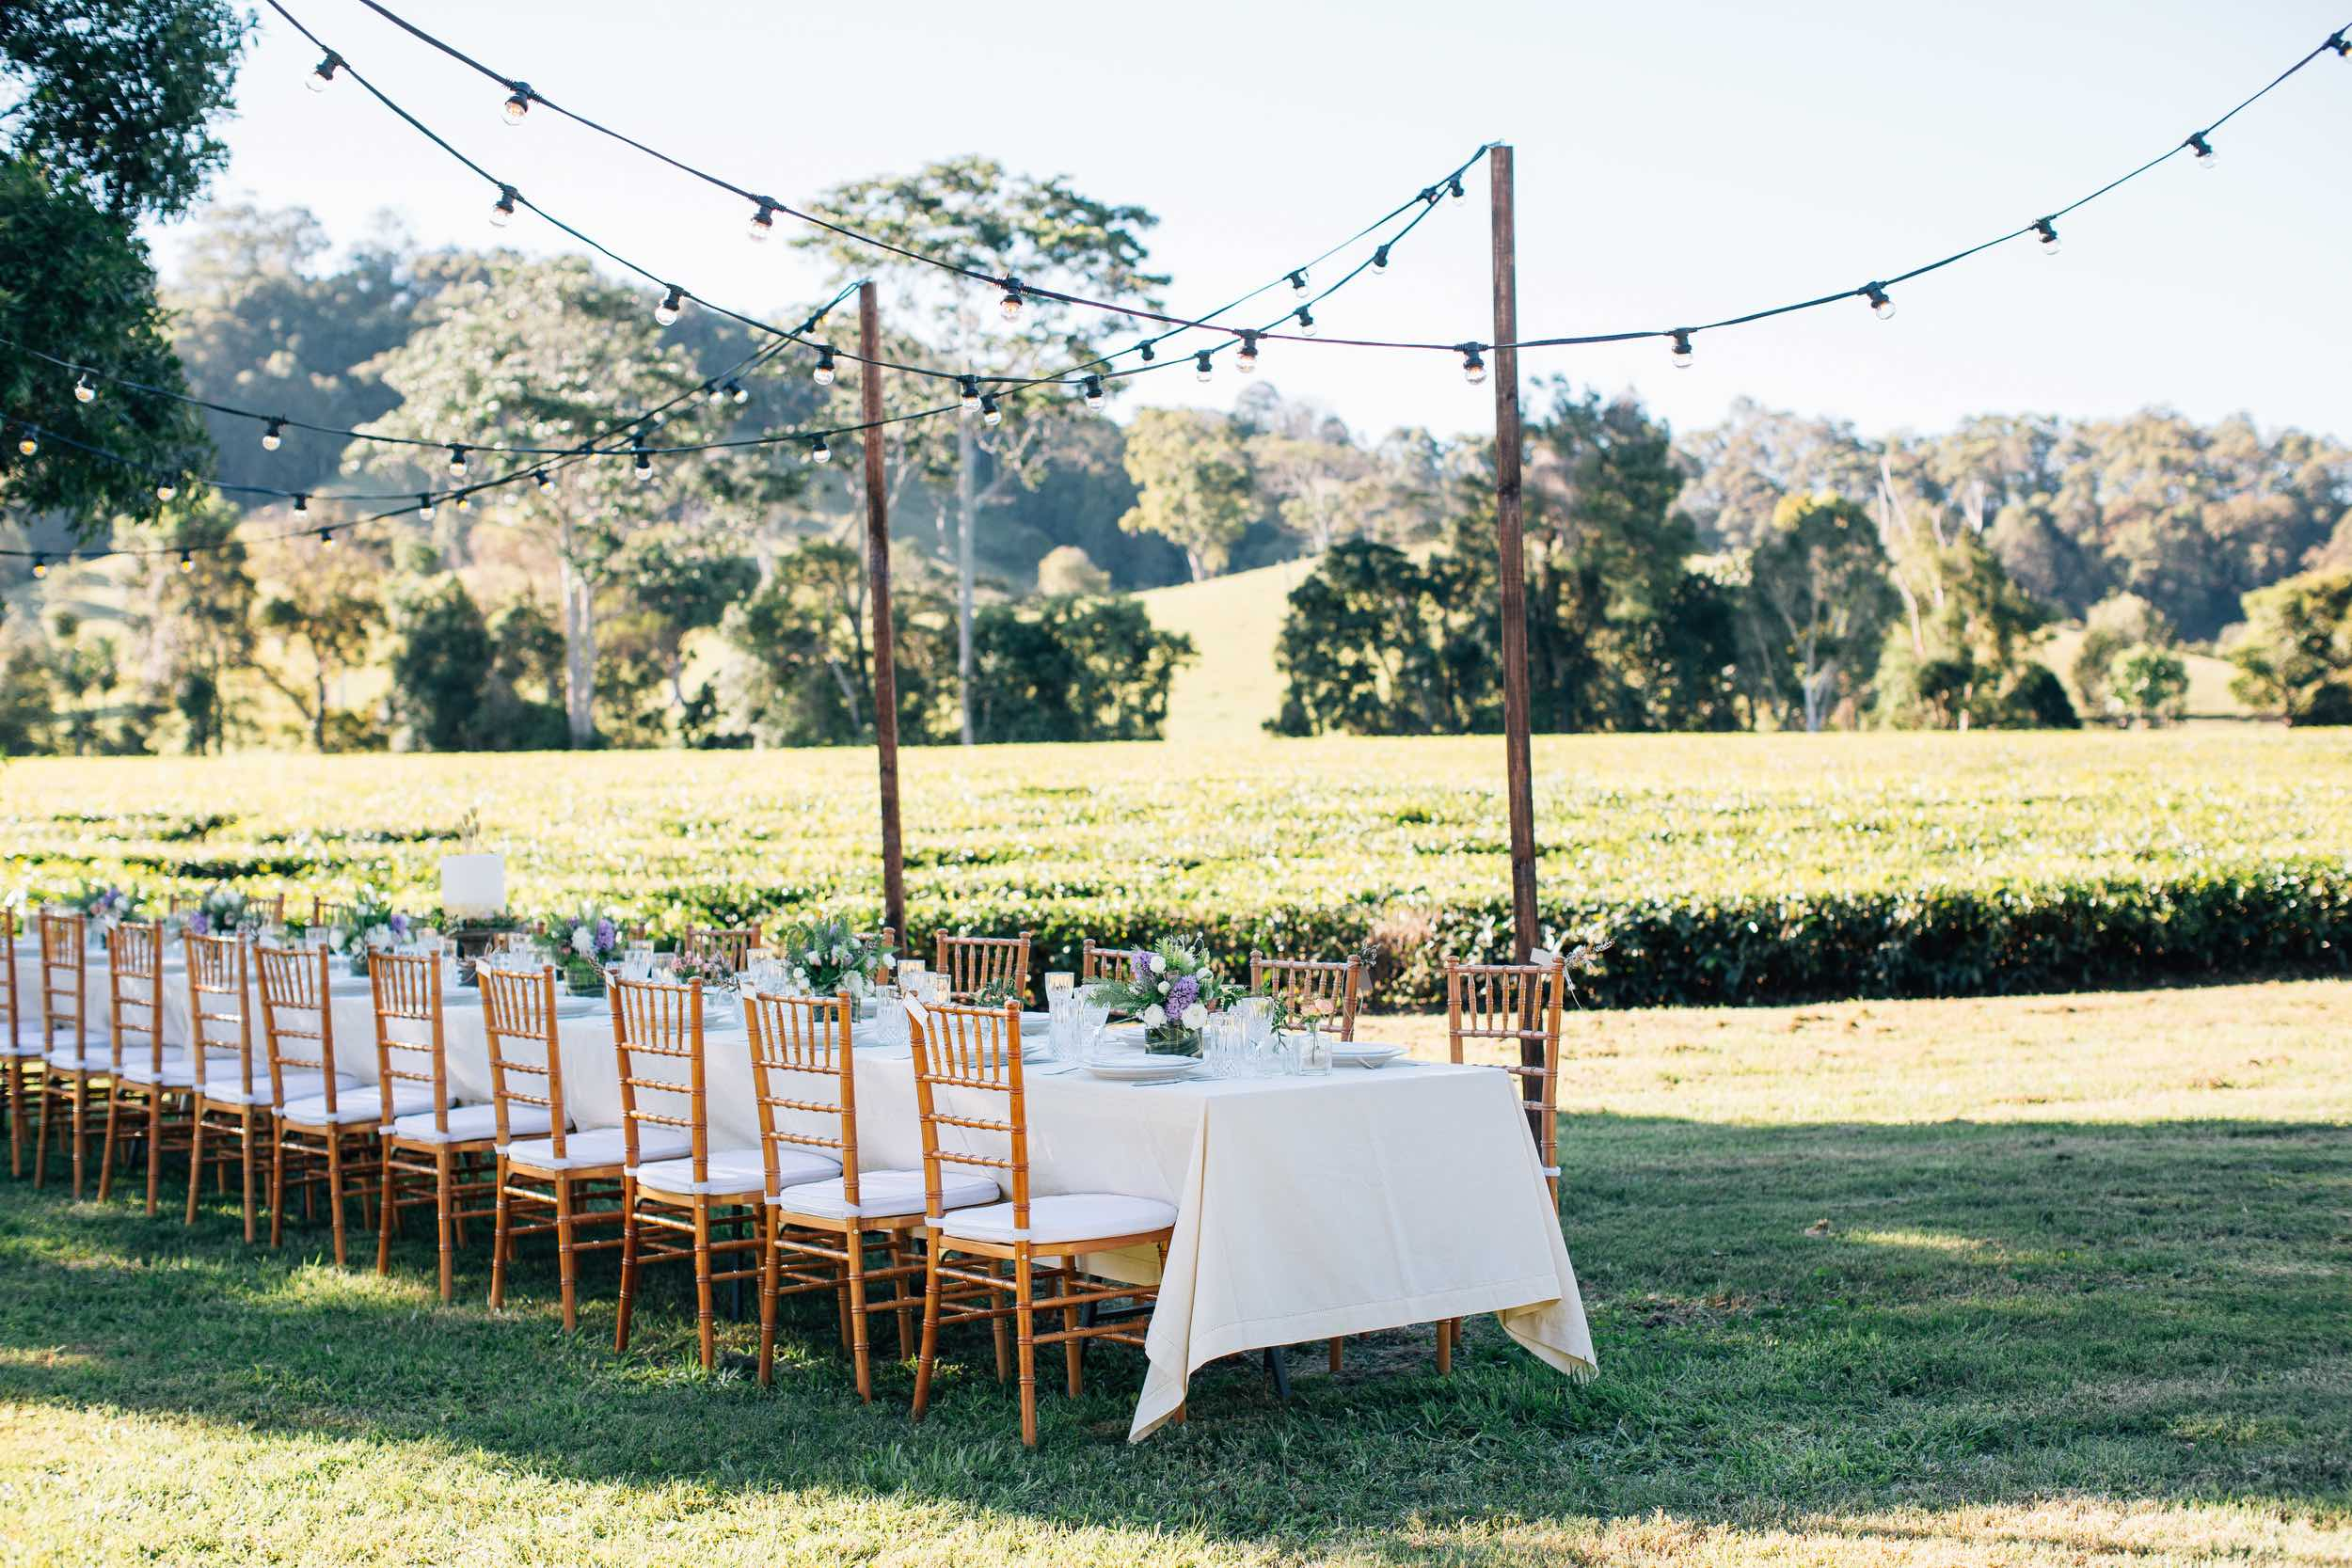 Image by Figtree Pictures / Venue at Madura Tea Estates / Planned by The Events Lounge / Lighting by Elyssium Lighting